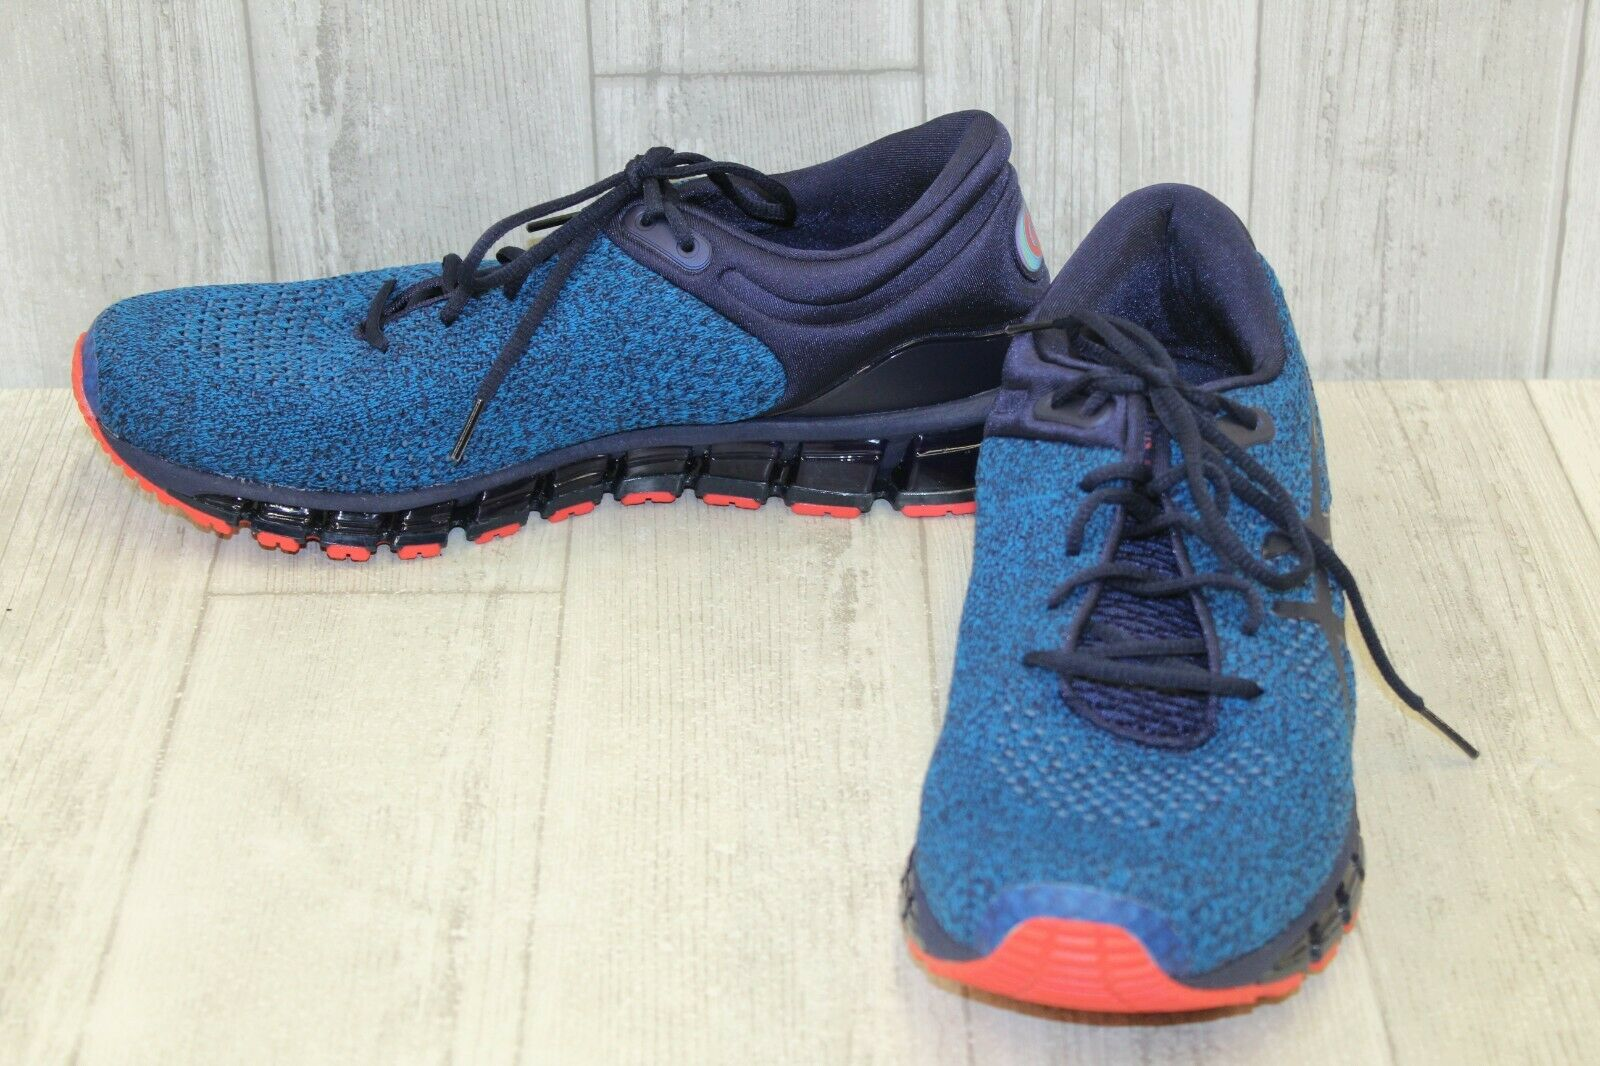 Asics Gel-Quantum 360 Knit 2 2 2 Running shoes - Men's Size 10.5 - Race bluee Peacoat 4df7b6